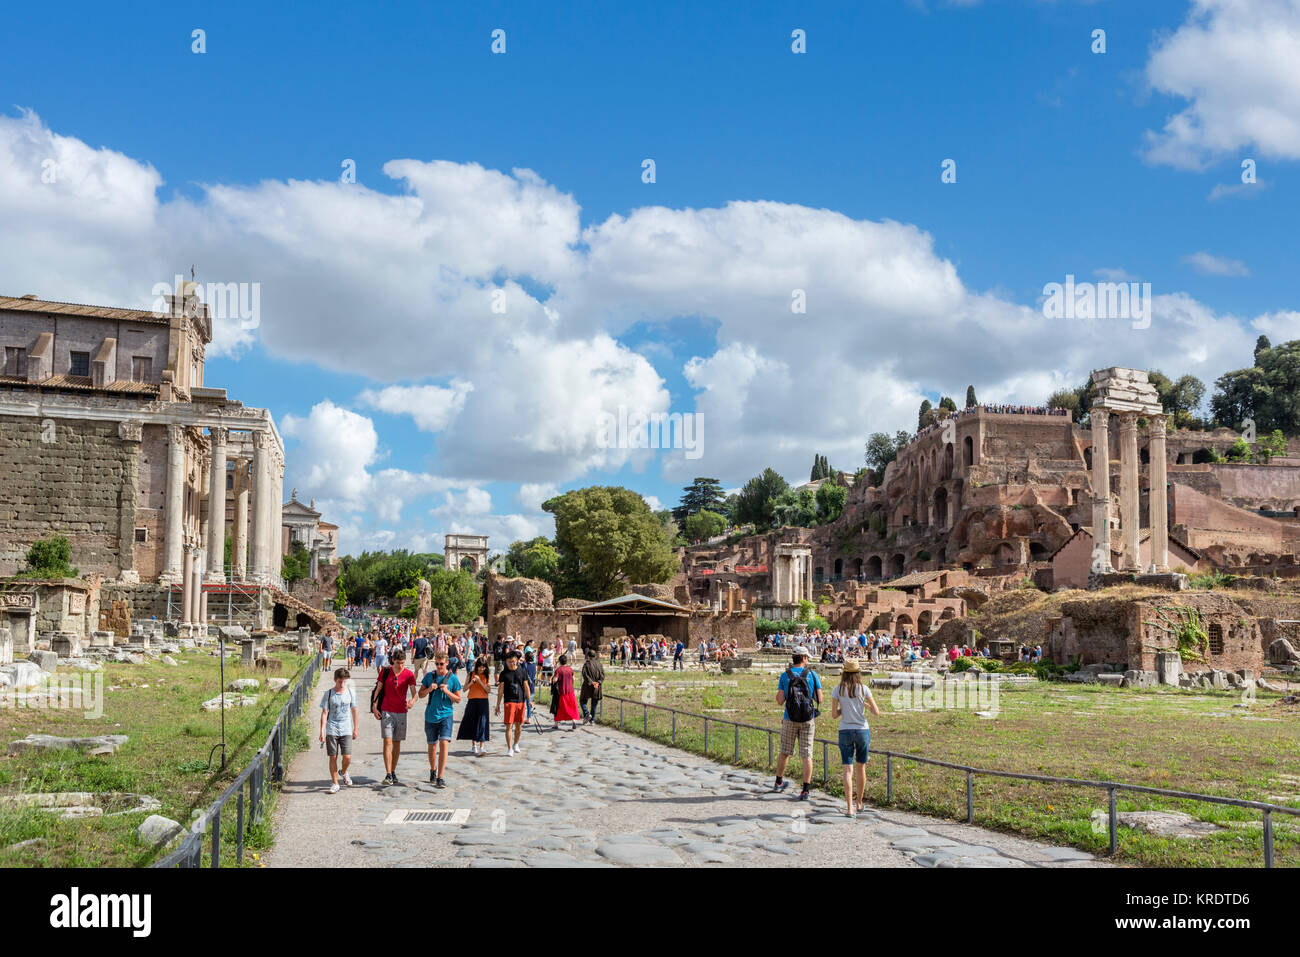 Rome, Forum. Via Sacra with the Temple of Antoninus and Faustina to the left and Palatine Hill to the right, Roman - Stock Image